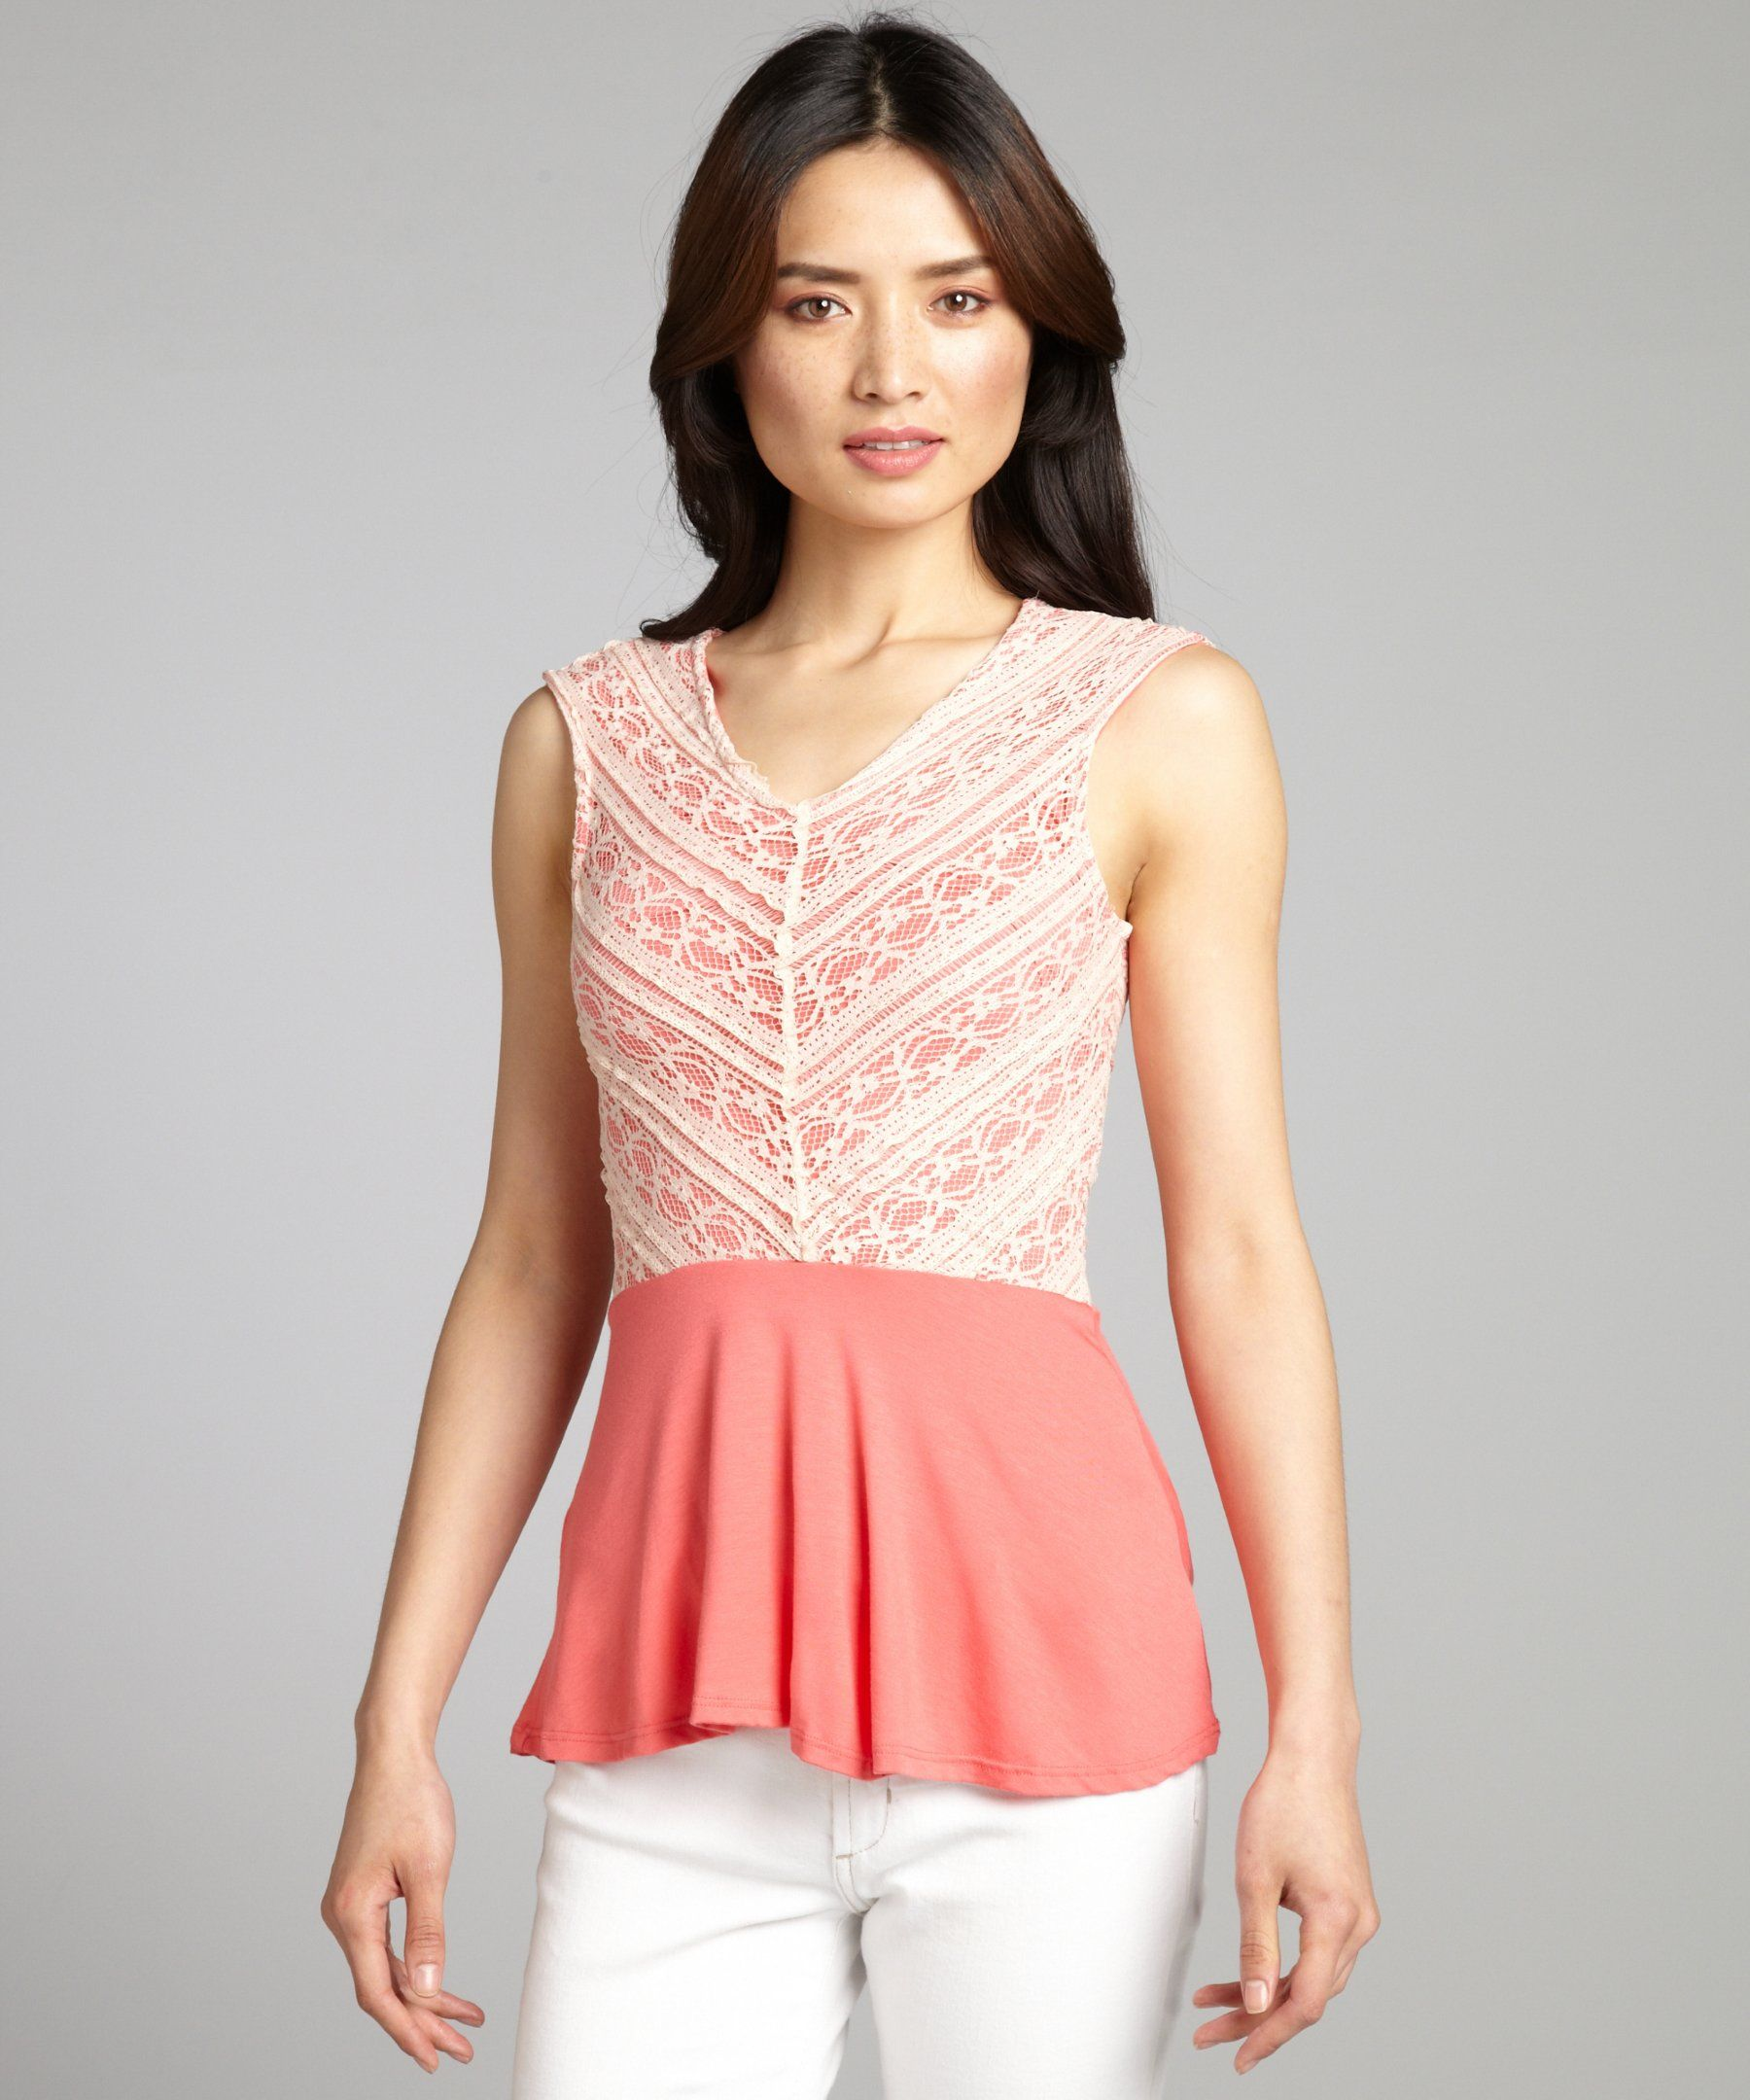 Casual Couture by Green Envelope coral and cream lace overlay jersey knit peplum top | BLUEFLY up to 70% off designer brands